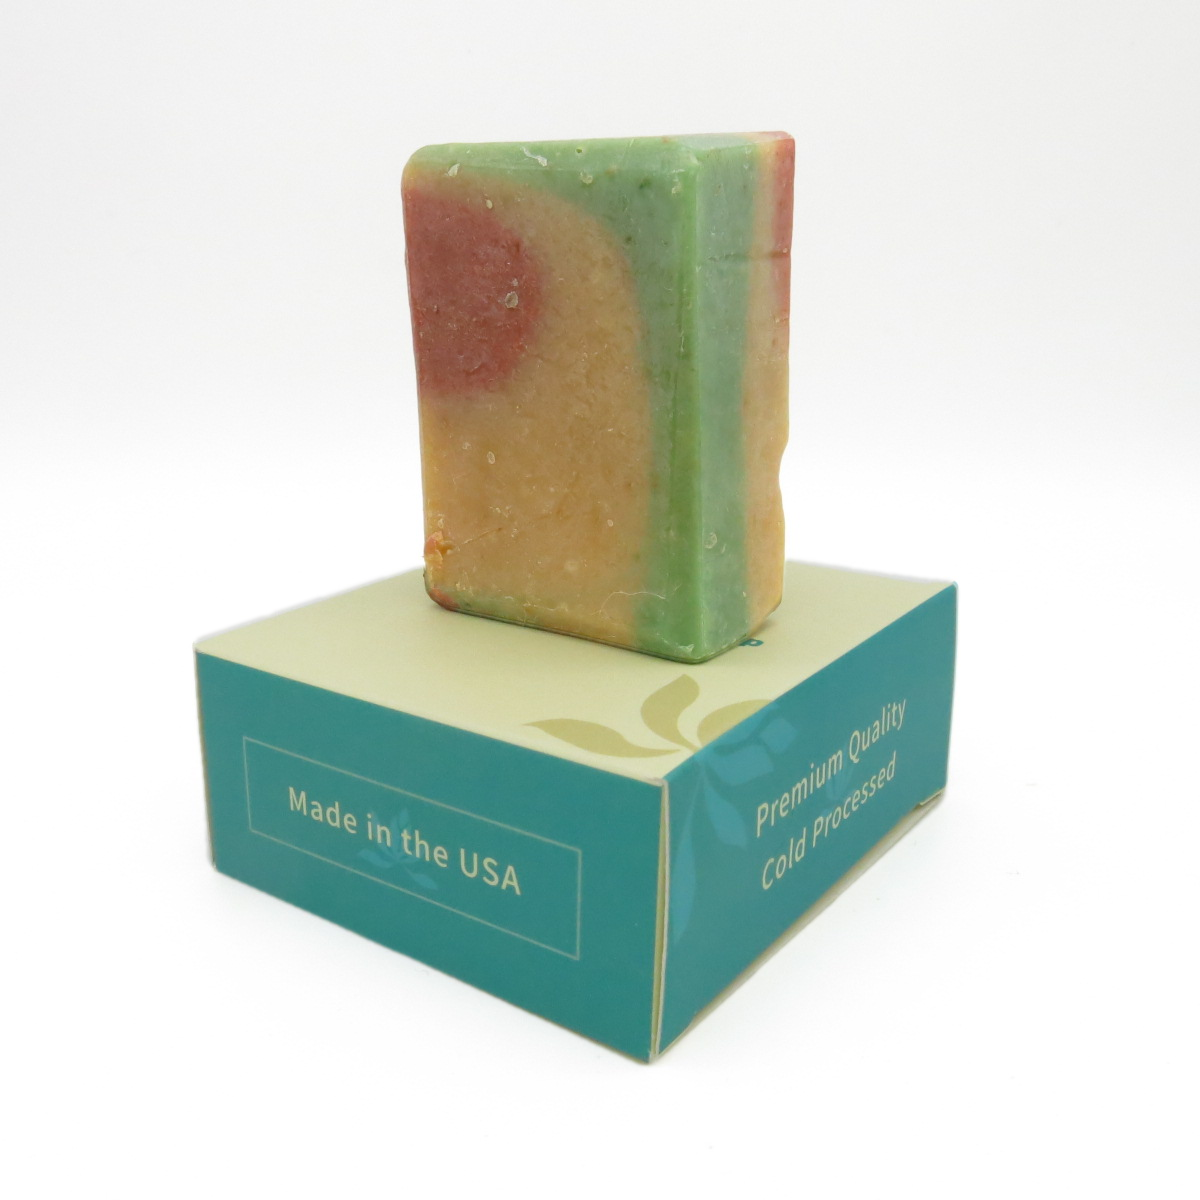 Avocado, Silk Protein and Herbs - Caring Carrot Facial Bar for Normal to Dry Skin